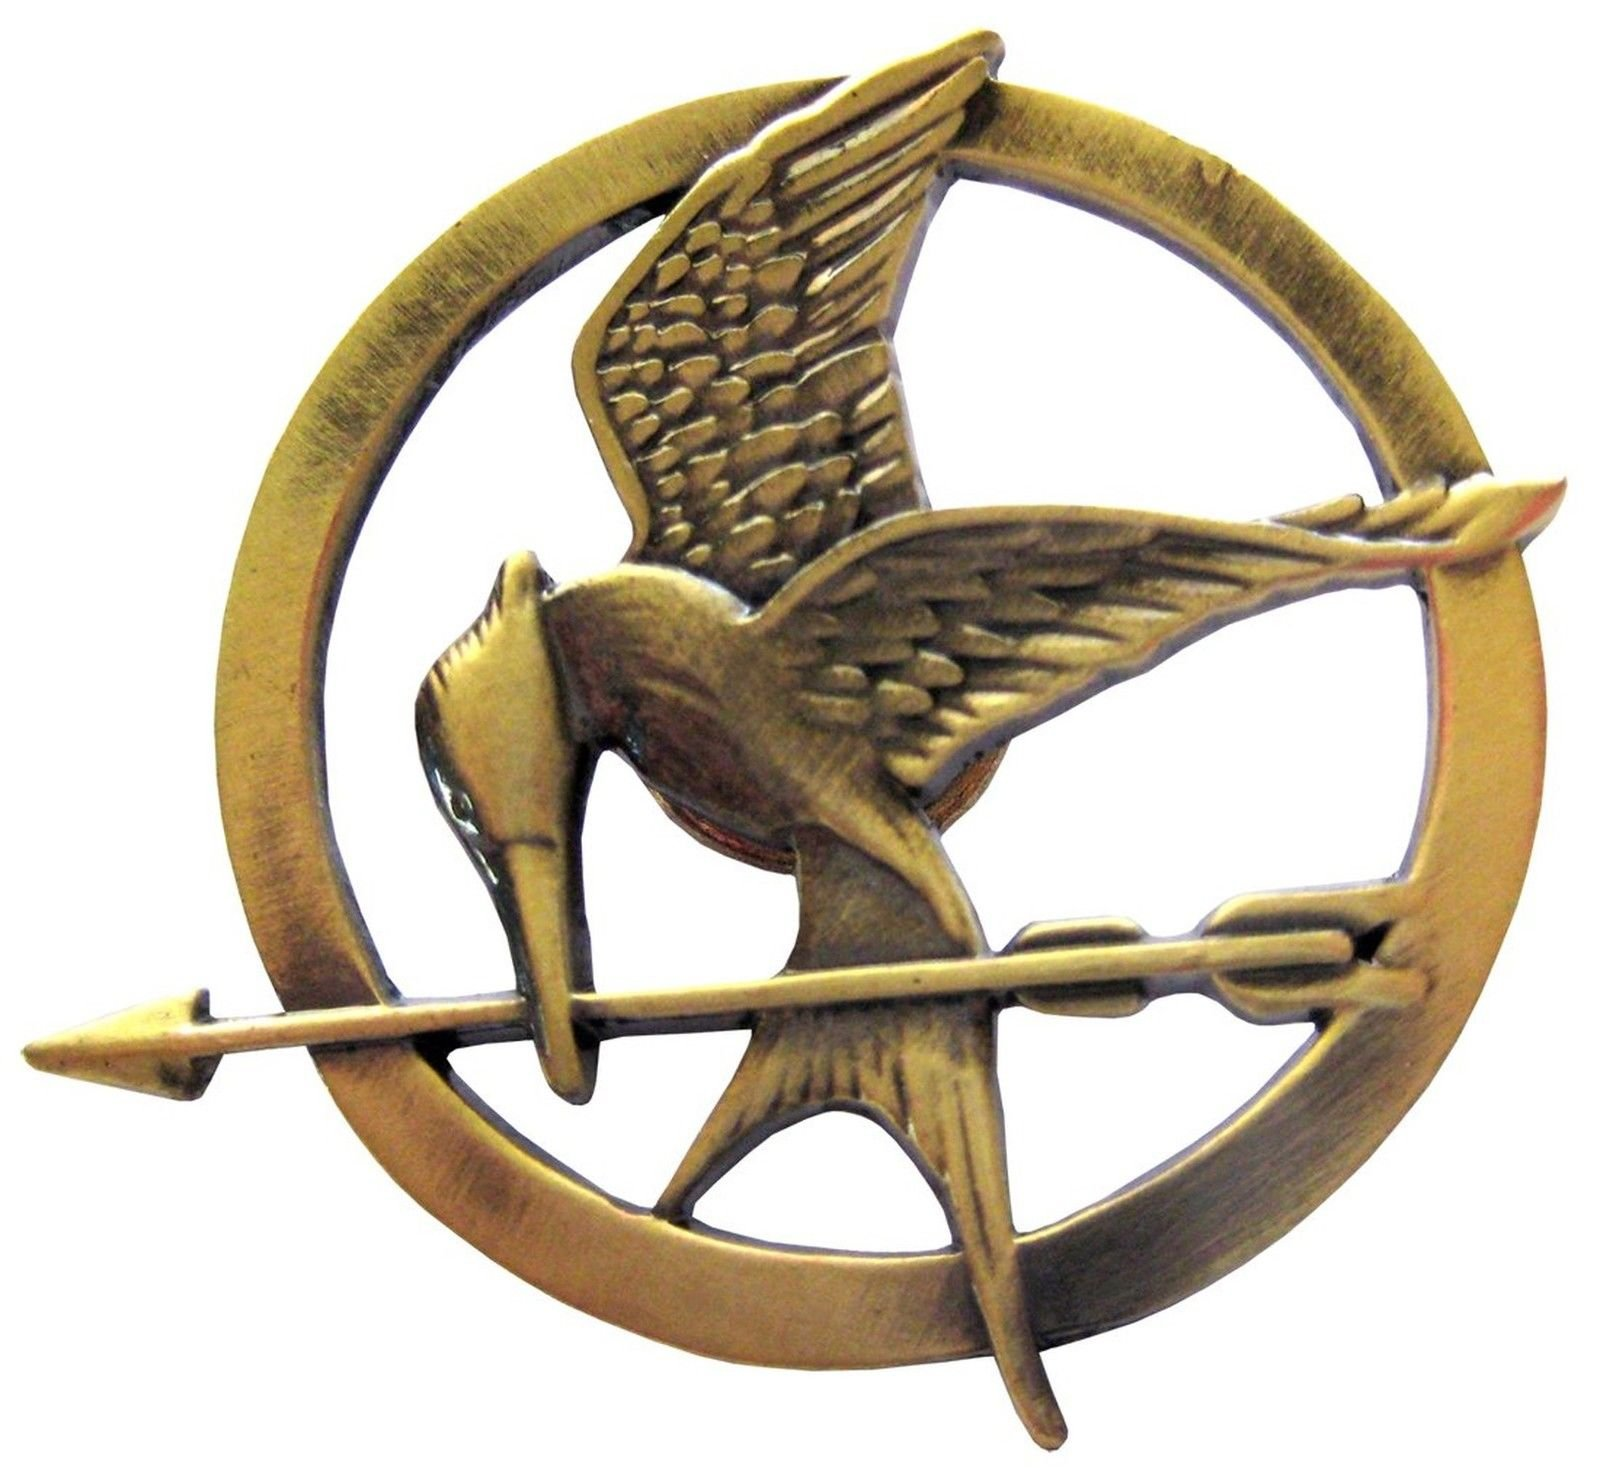 The Hunger Games Movie Mockingjay Prop Rep Pin